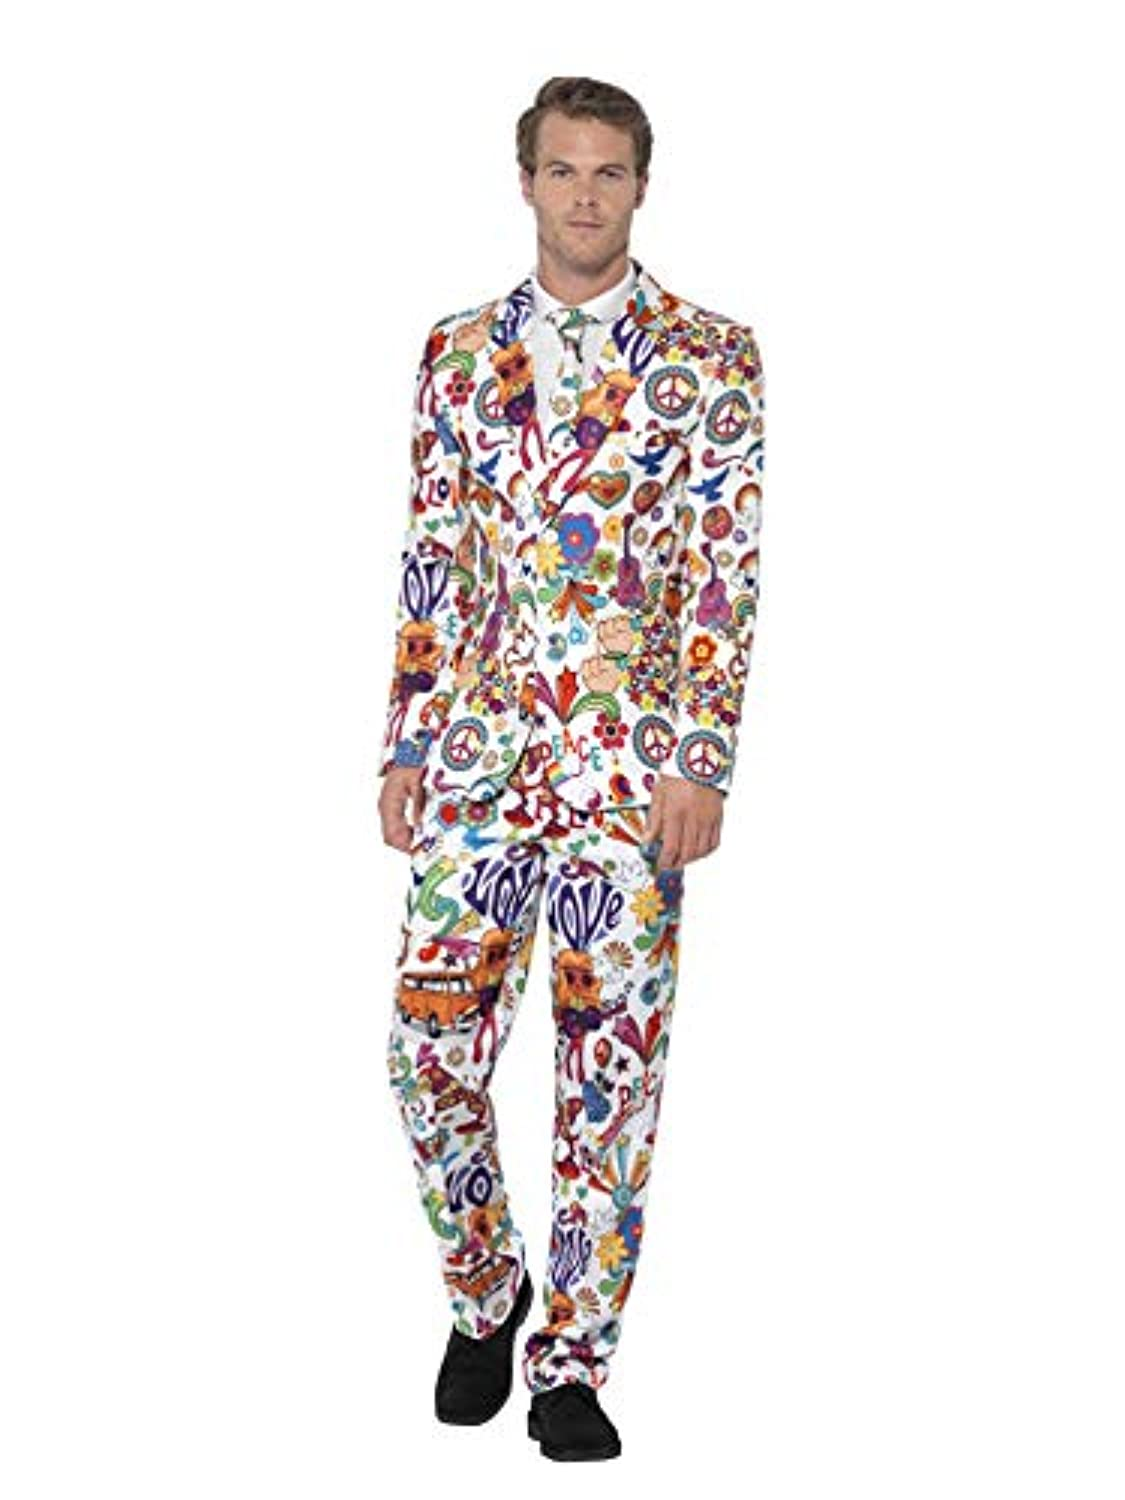 (L, Multi) - Smiffy's Men's Groovy Suit, Stand Out Suit, Jacket, Pants and Tie, Stand Out Suits, Serious Fun, Size L, 24592 (US)